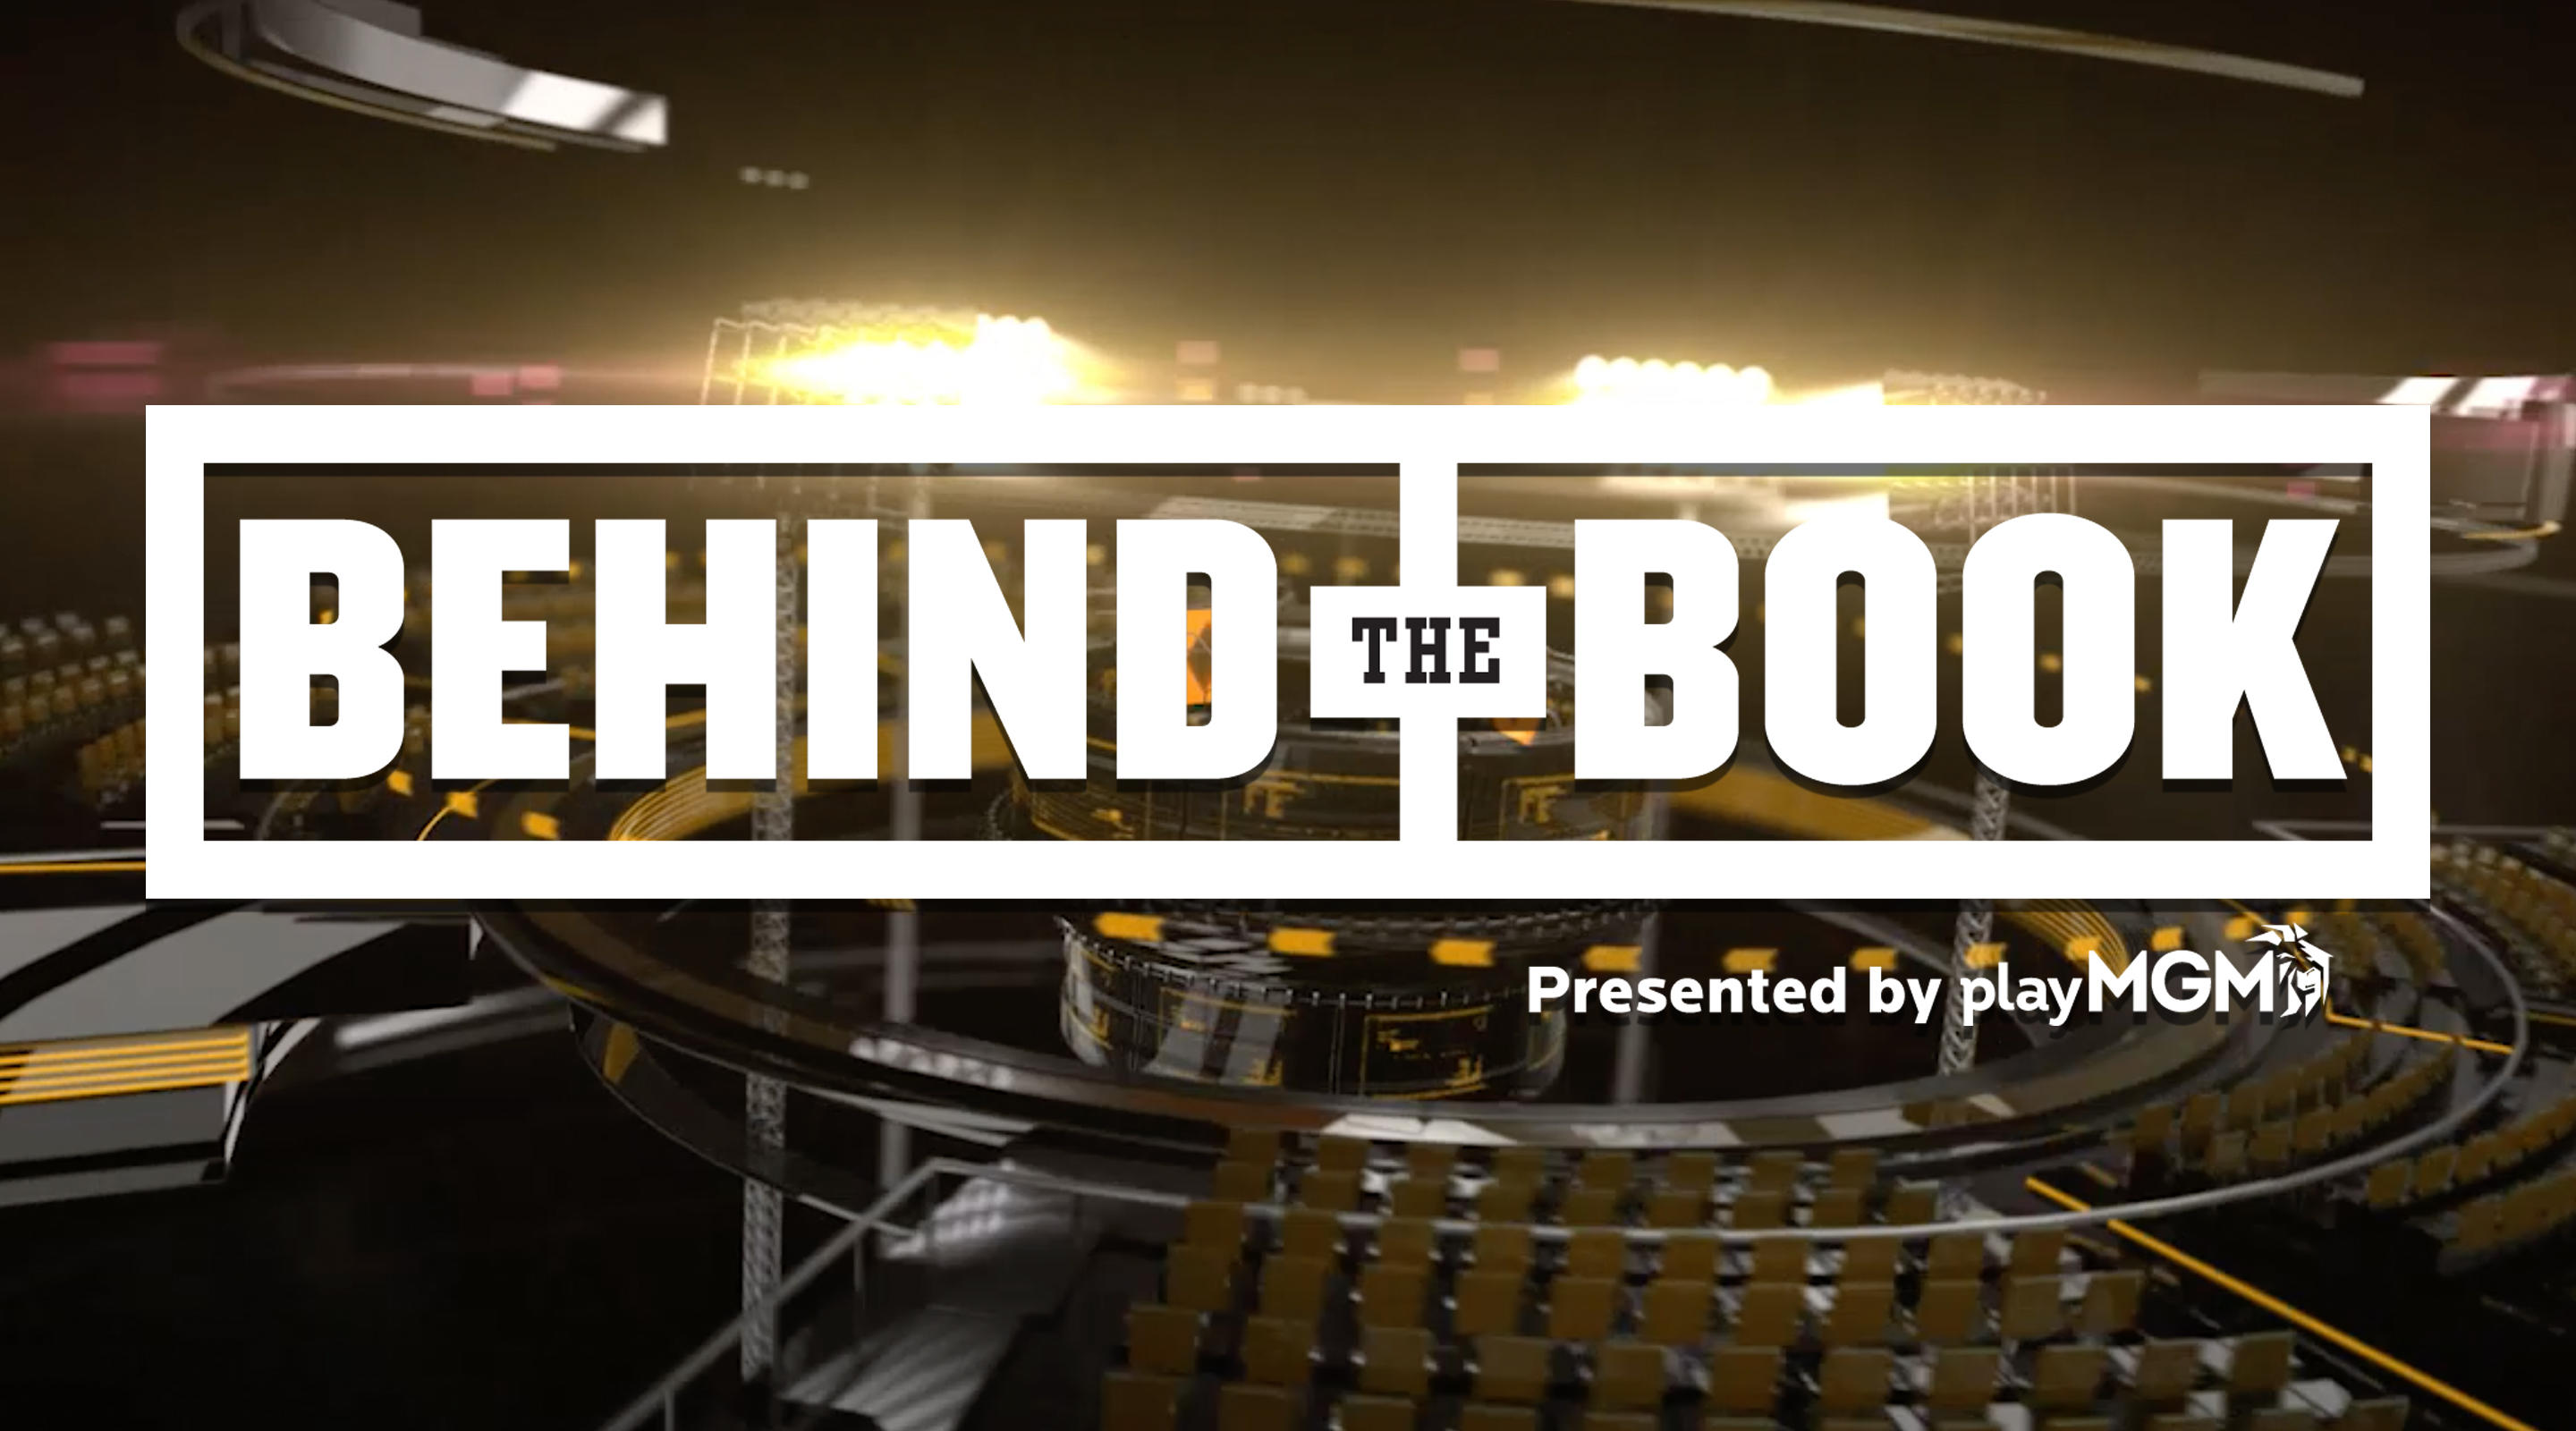 Behind the Book presented by playMGM.